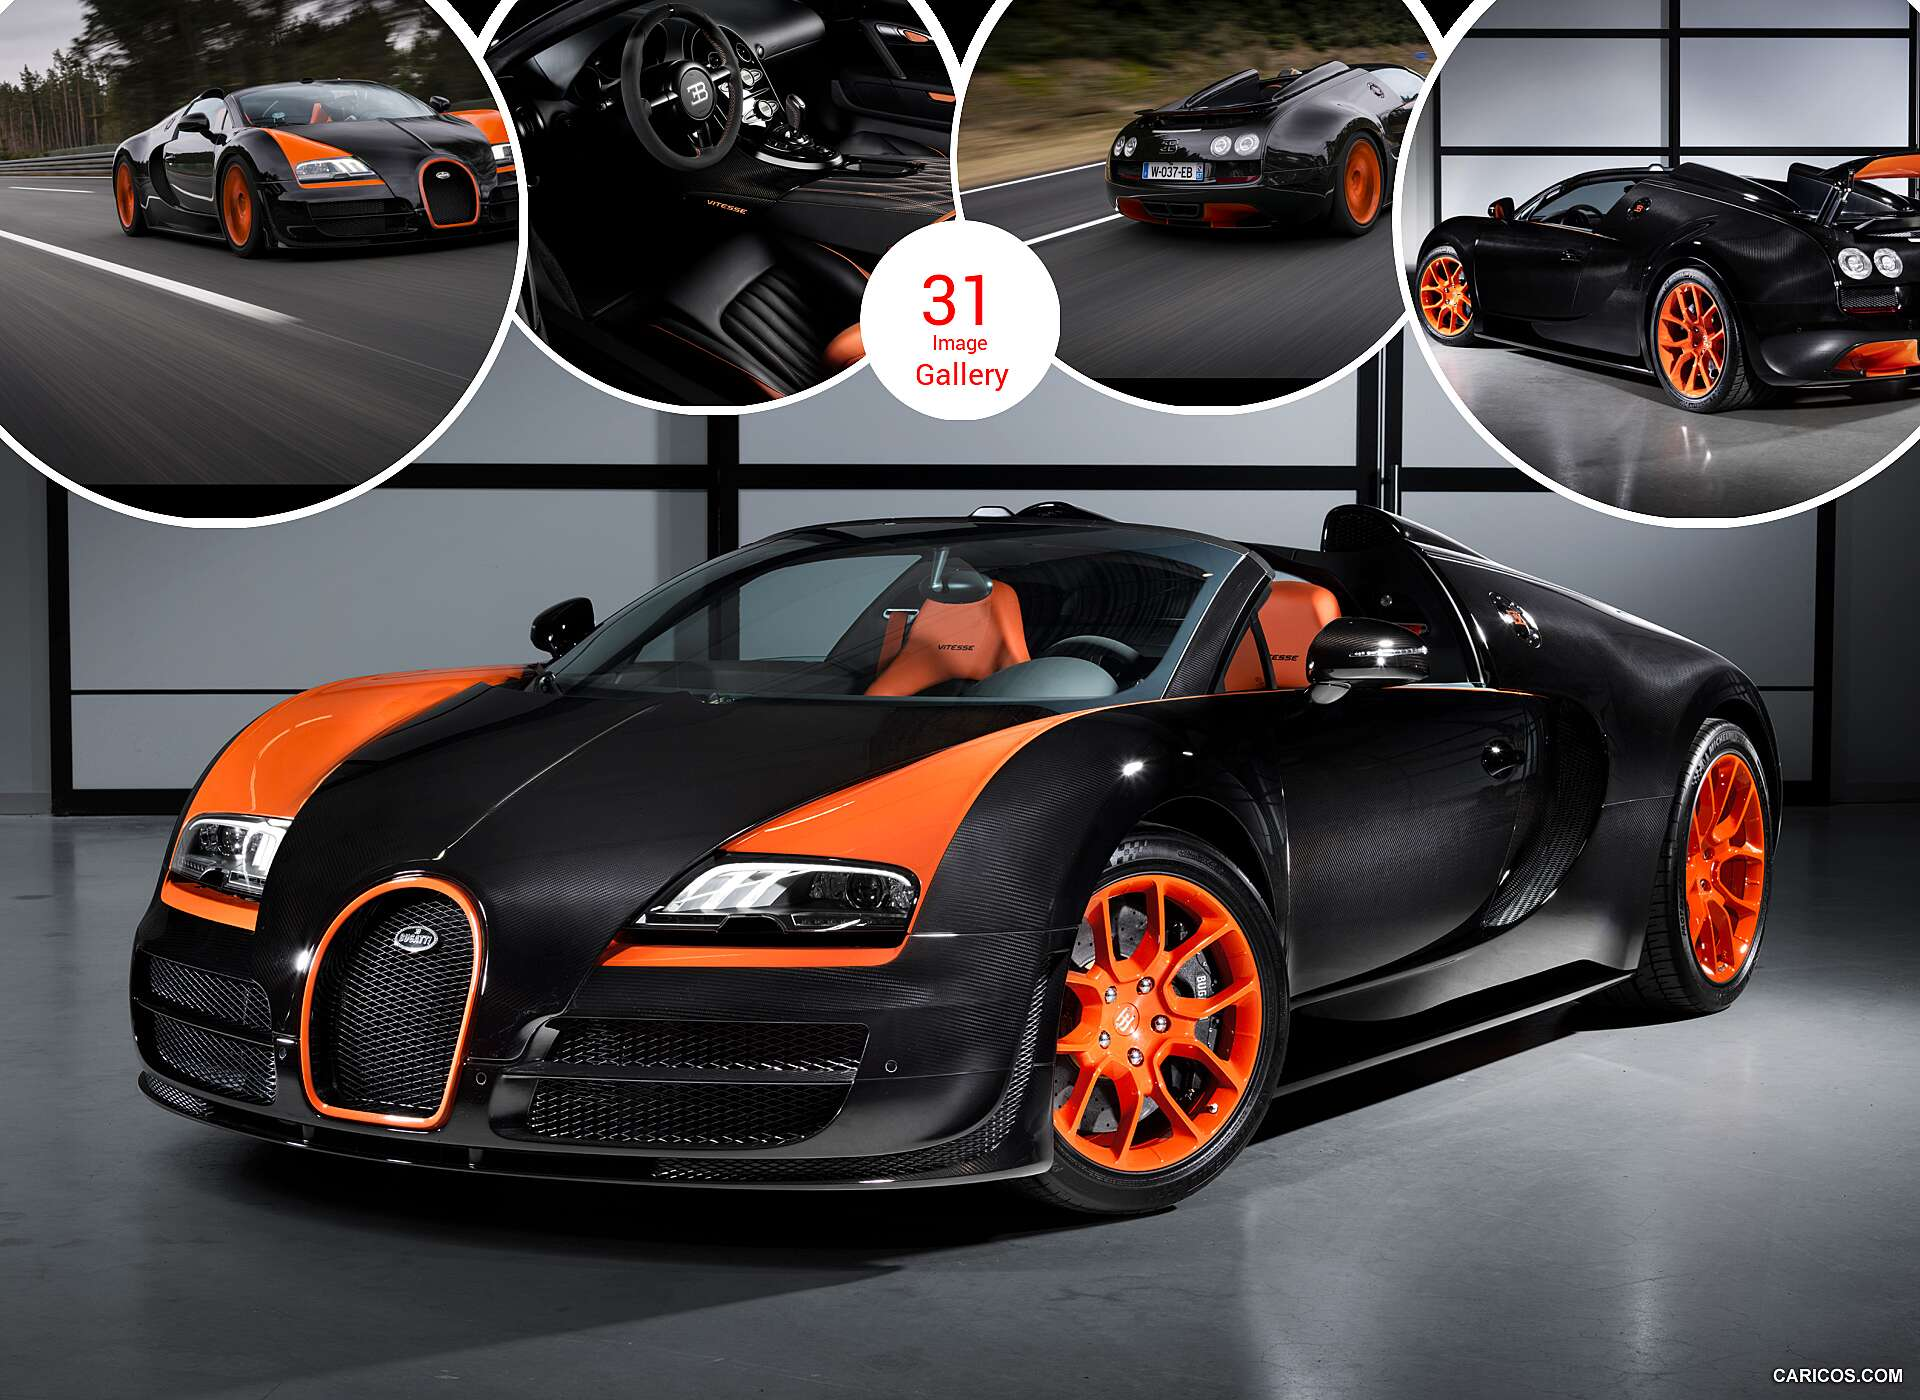 2013 bugatti veyron 16 4 grand sport vitesse world record. Black Bedroom Furniture Sets. Home Design Ideas